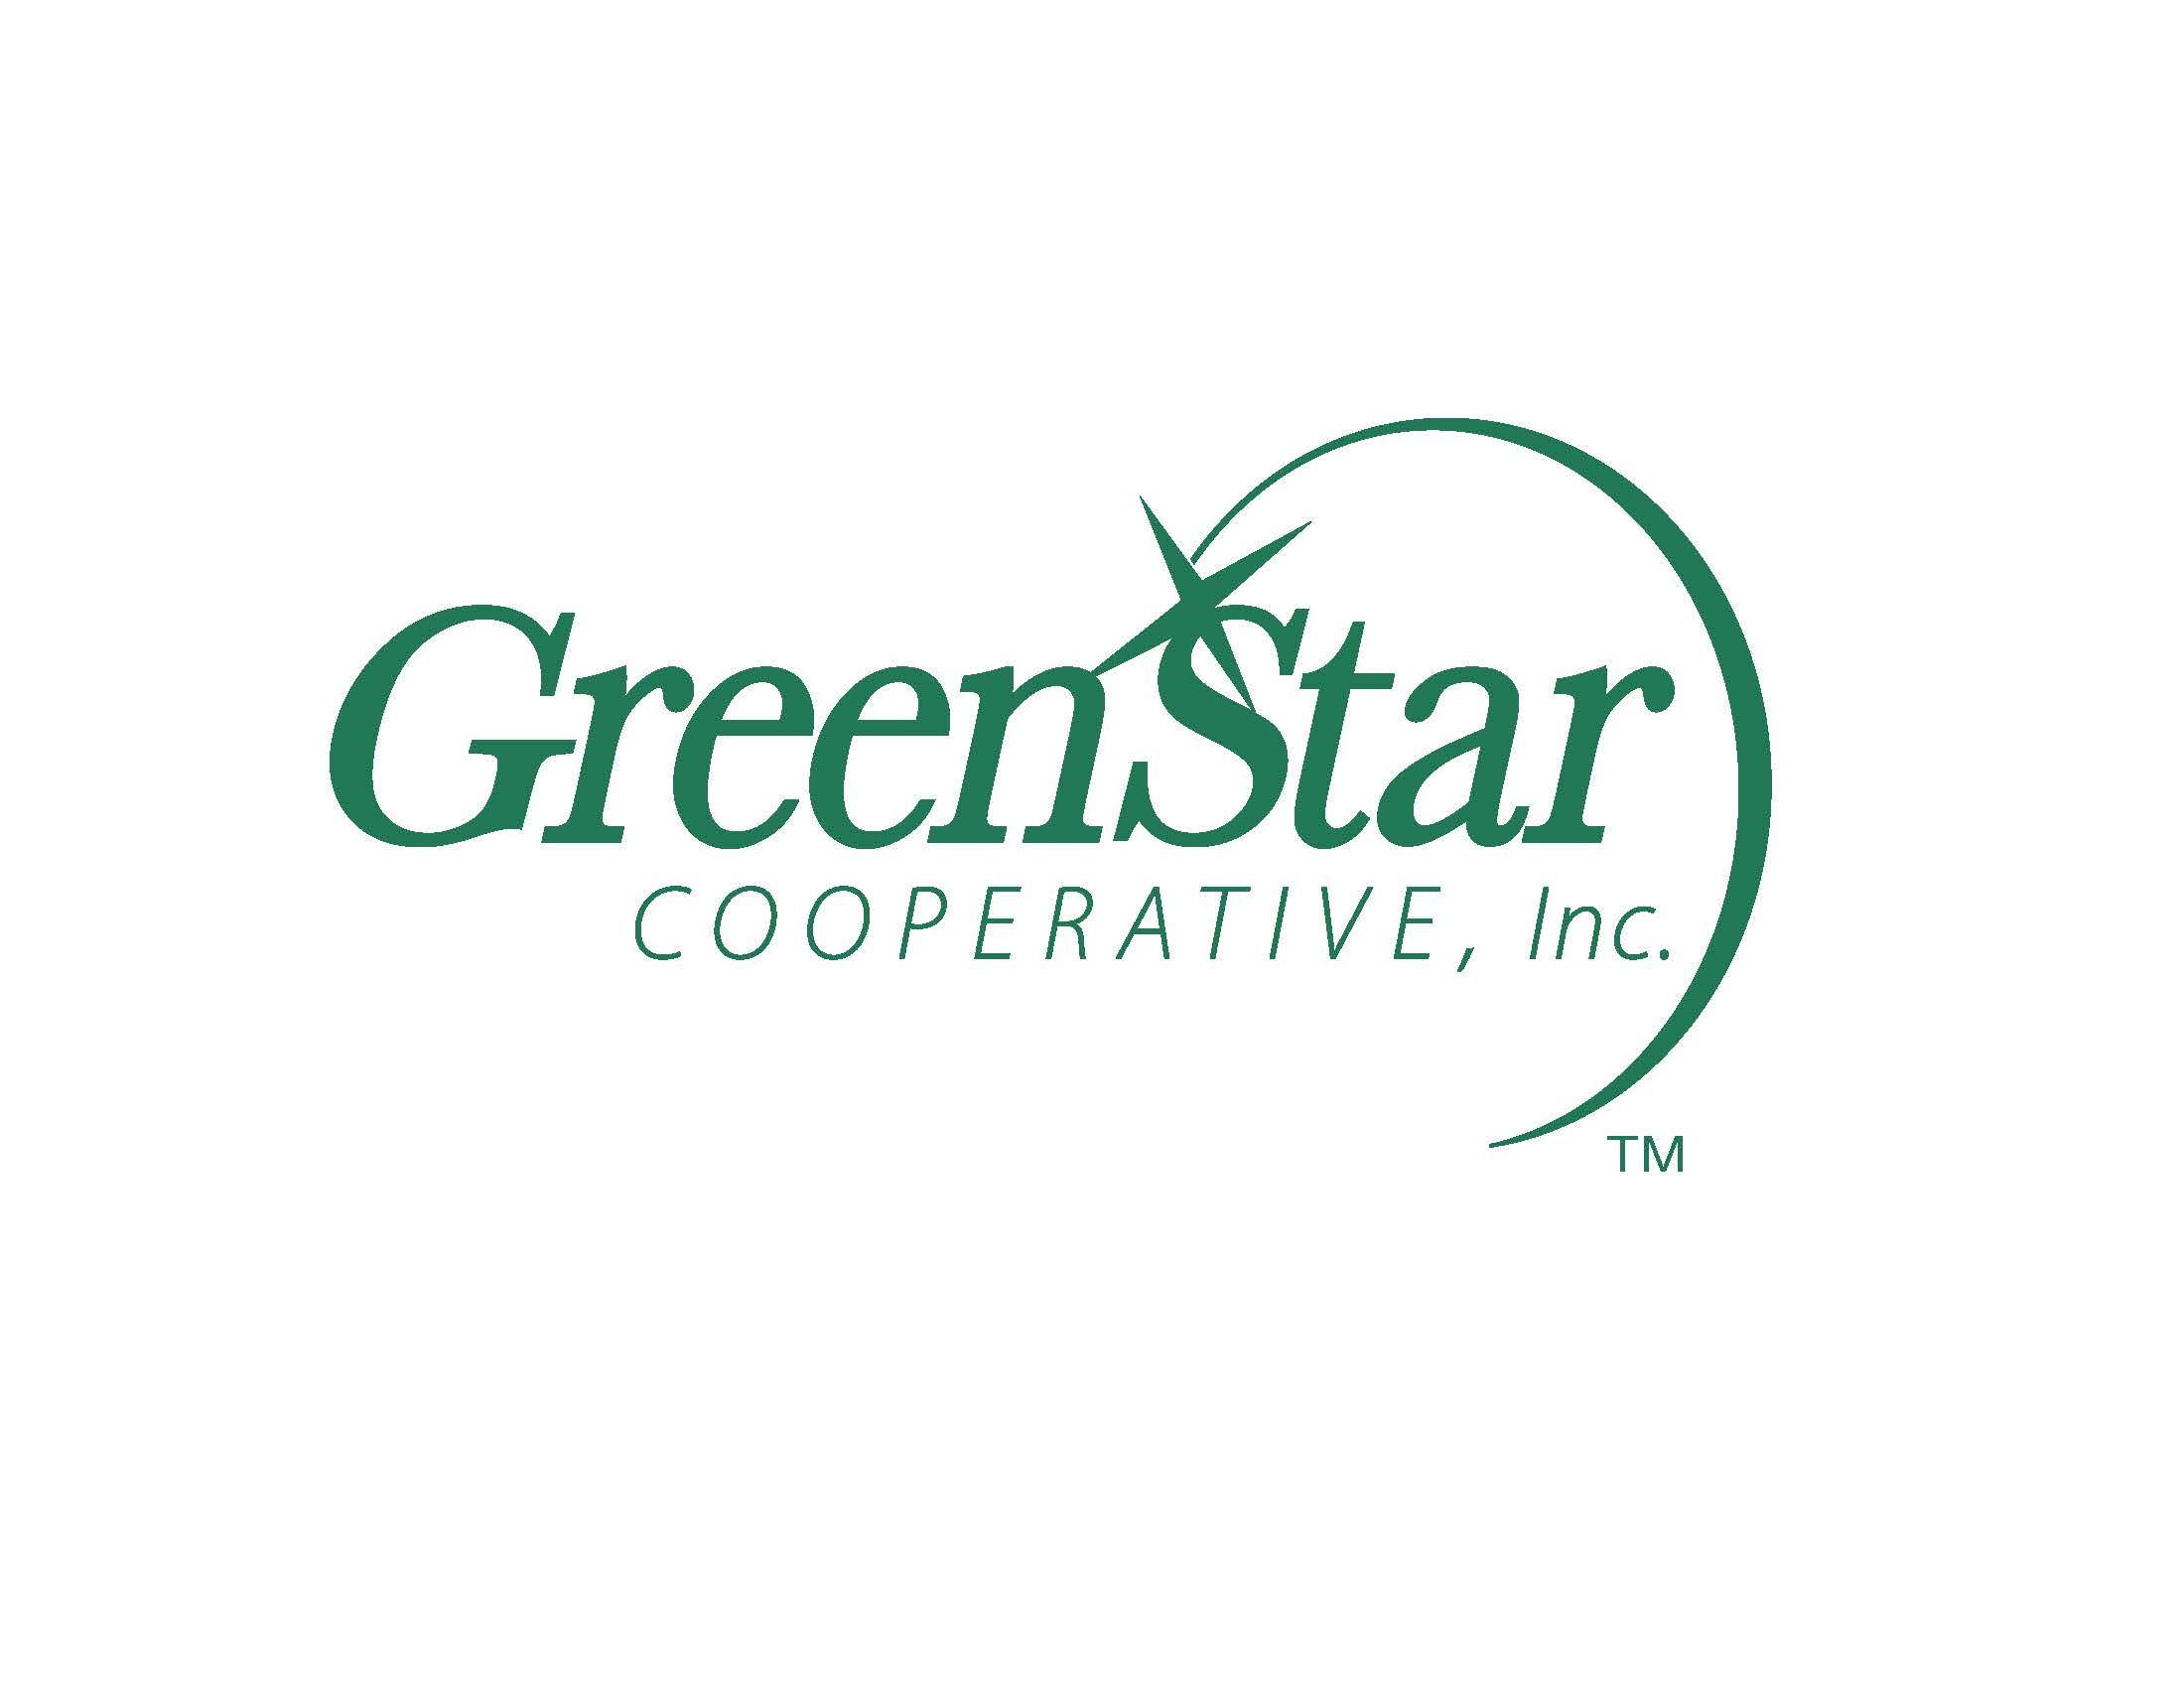 GreenStar Cooperative, Inc. Farm Markets Division